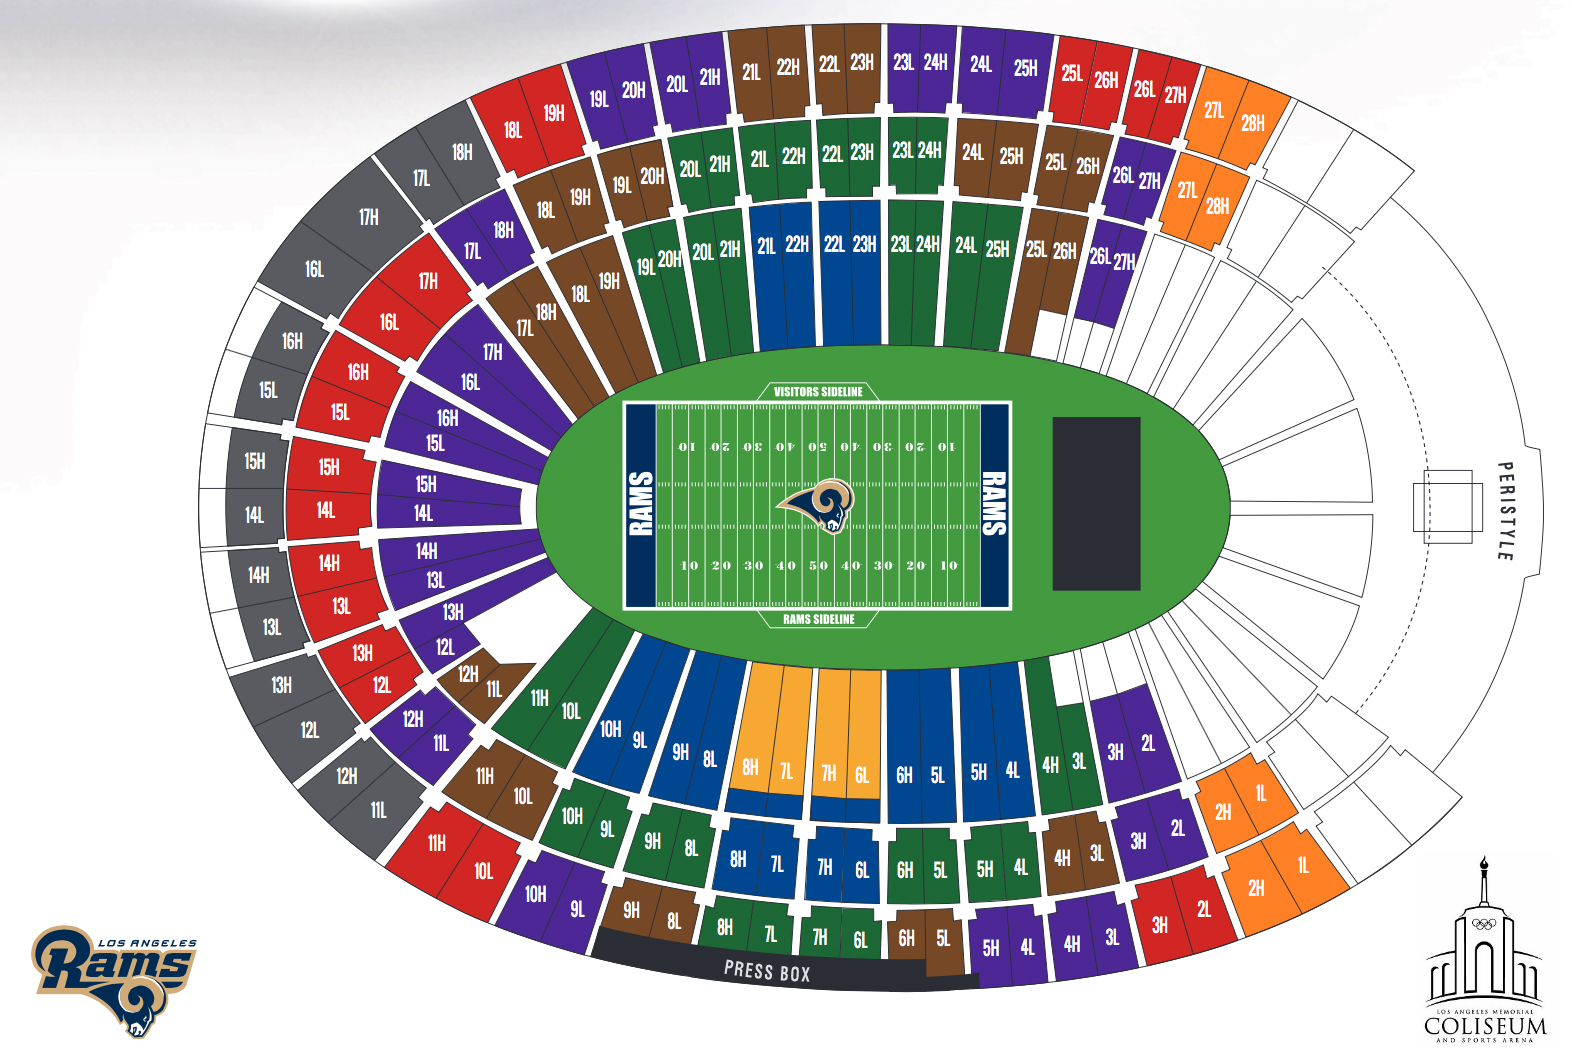 Los angeles memorial coliseum los angeles ca seating chart view